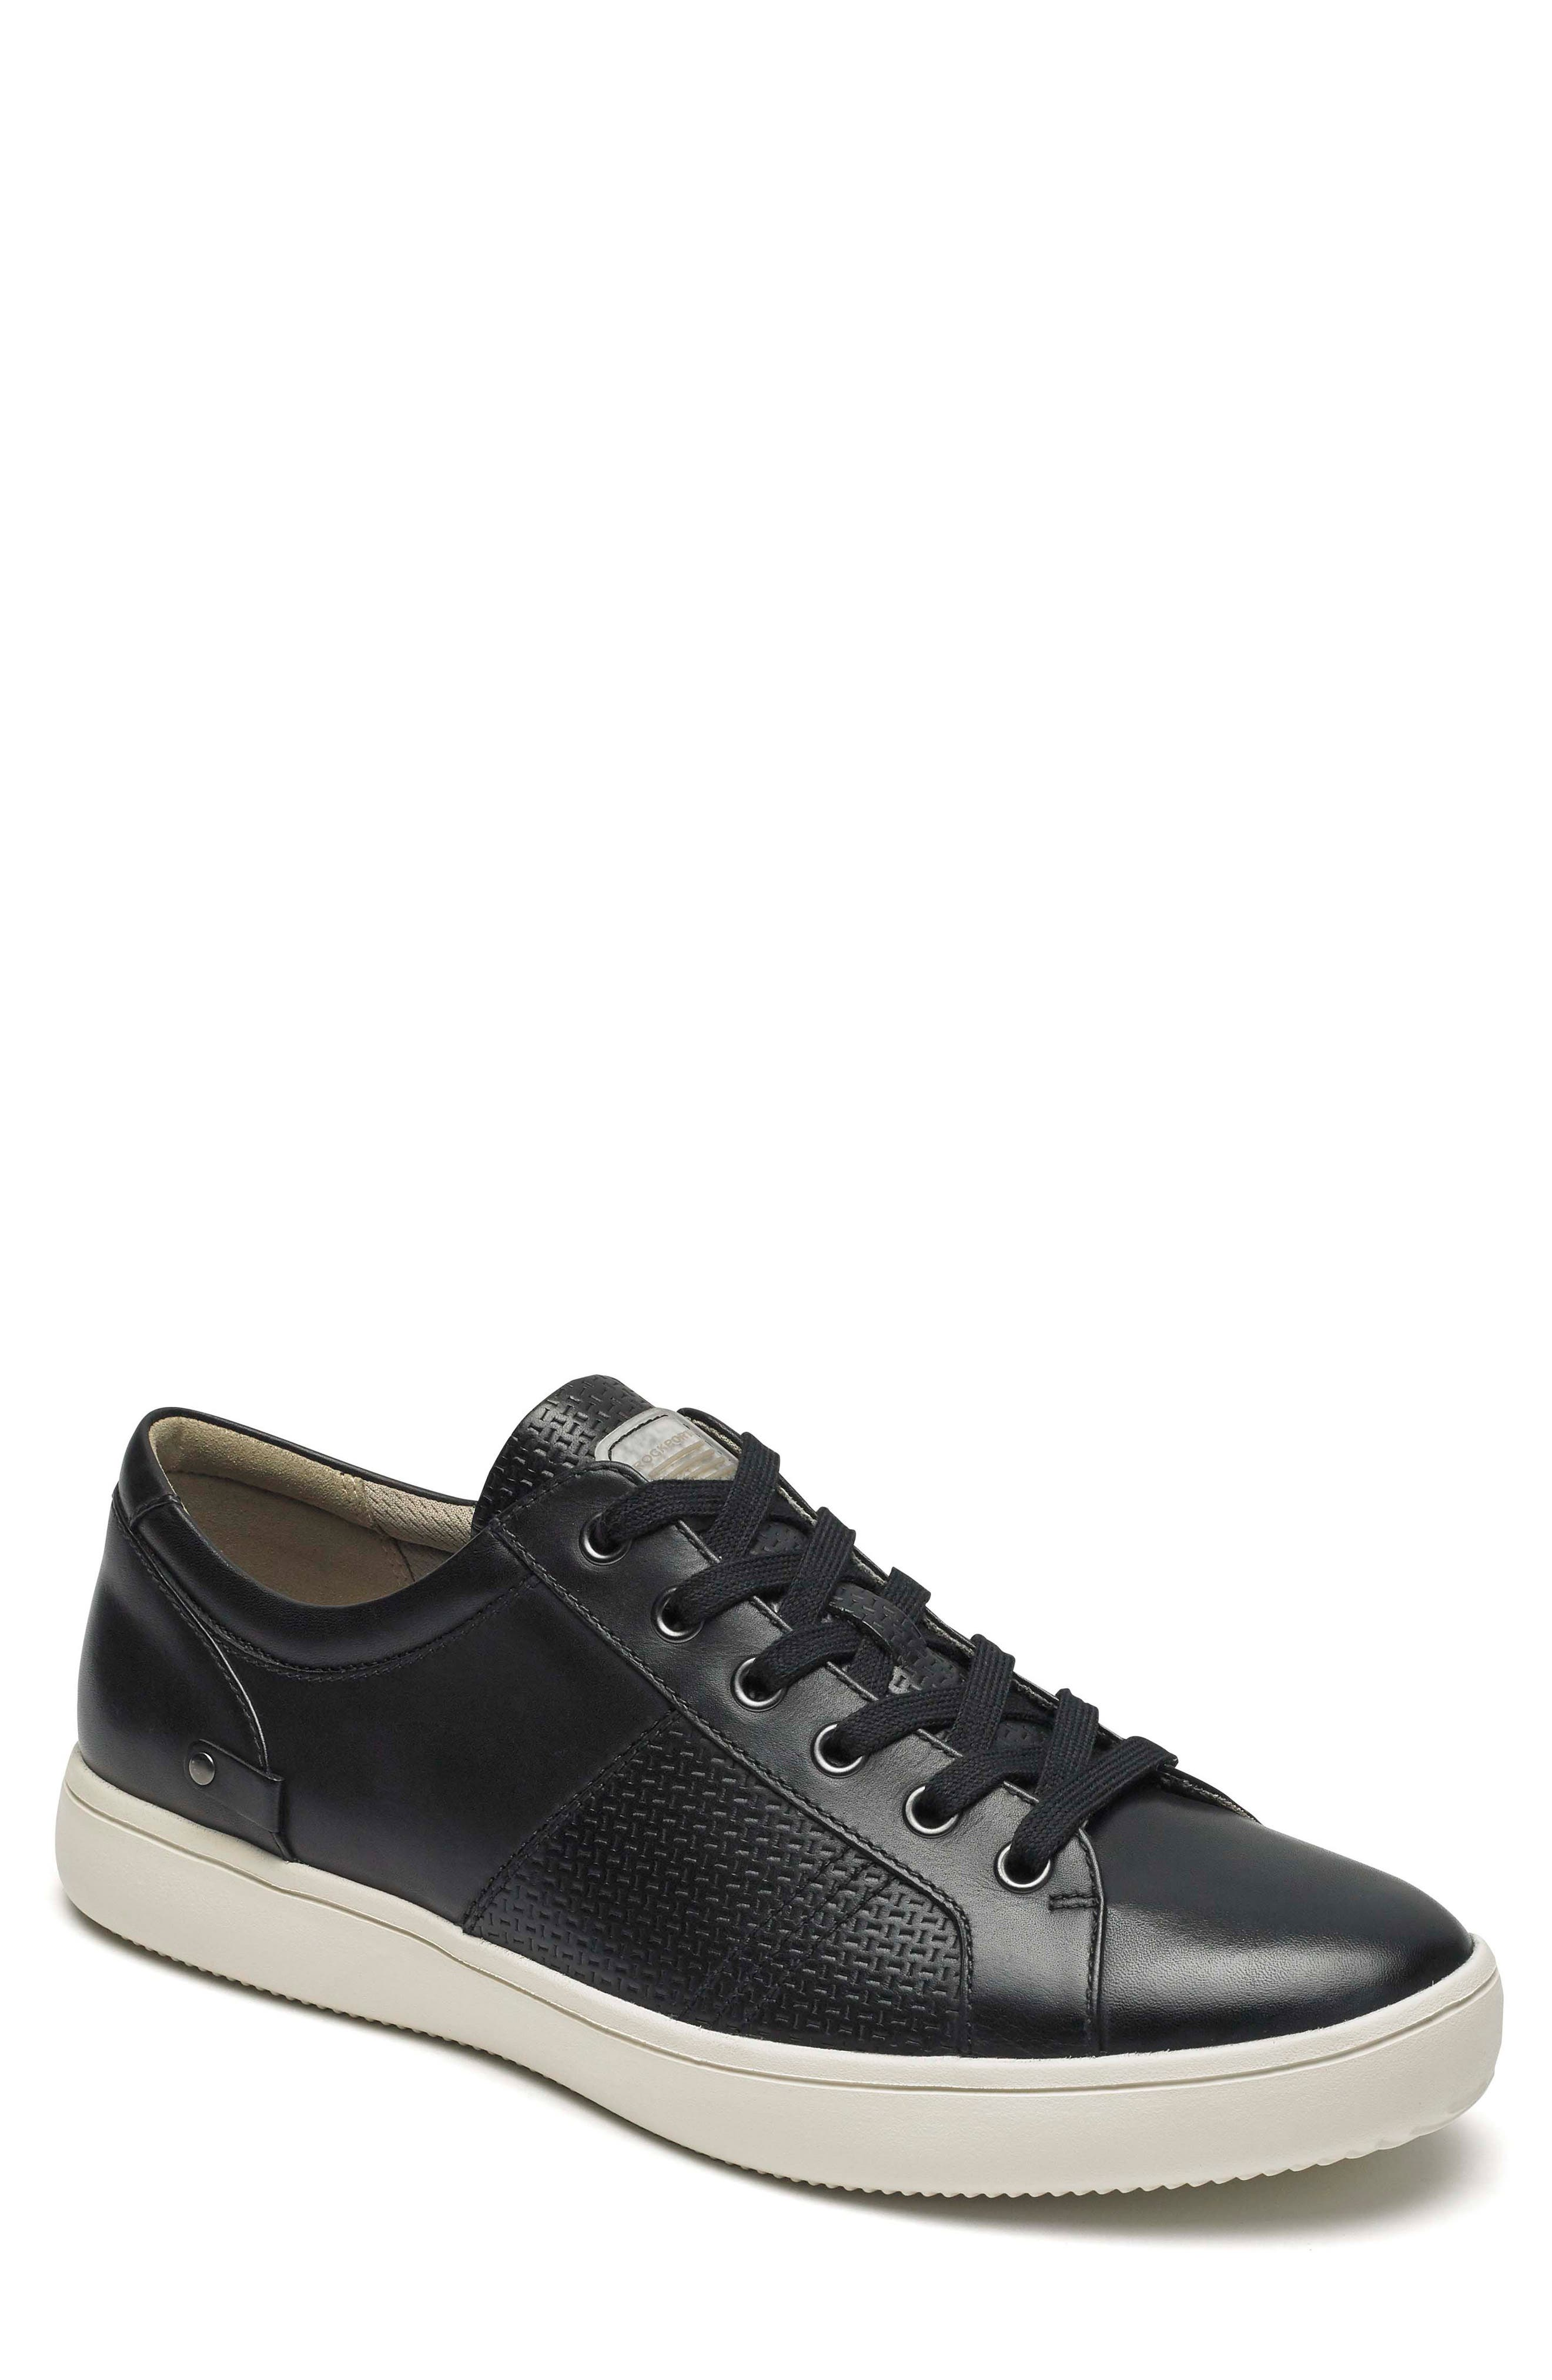 City Lites Collection Lace-Up Sneaker,                             Main thumbnail 1, color,                             001